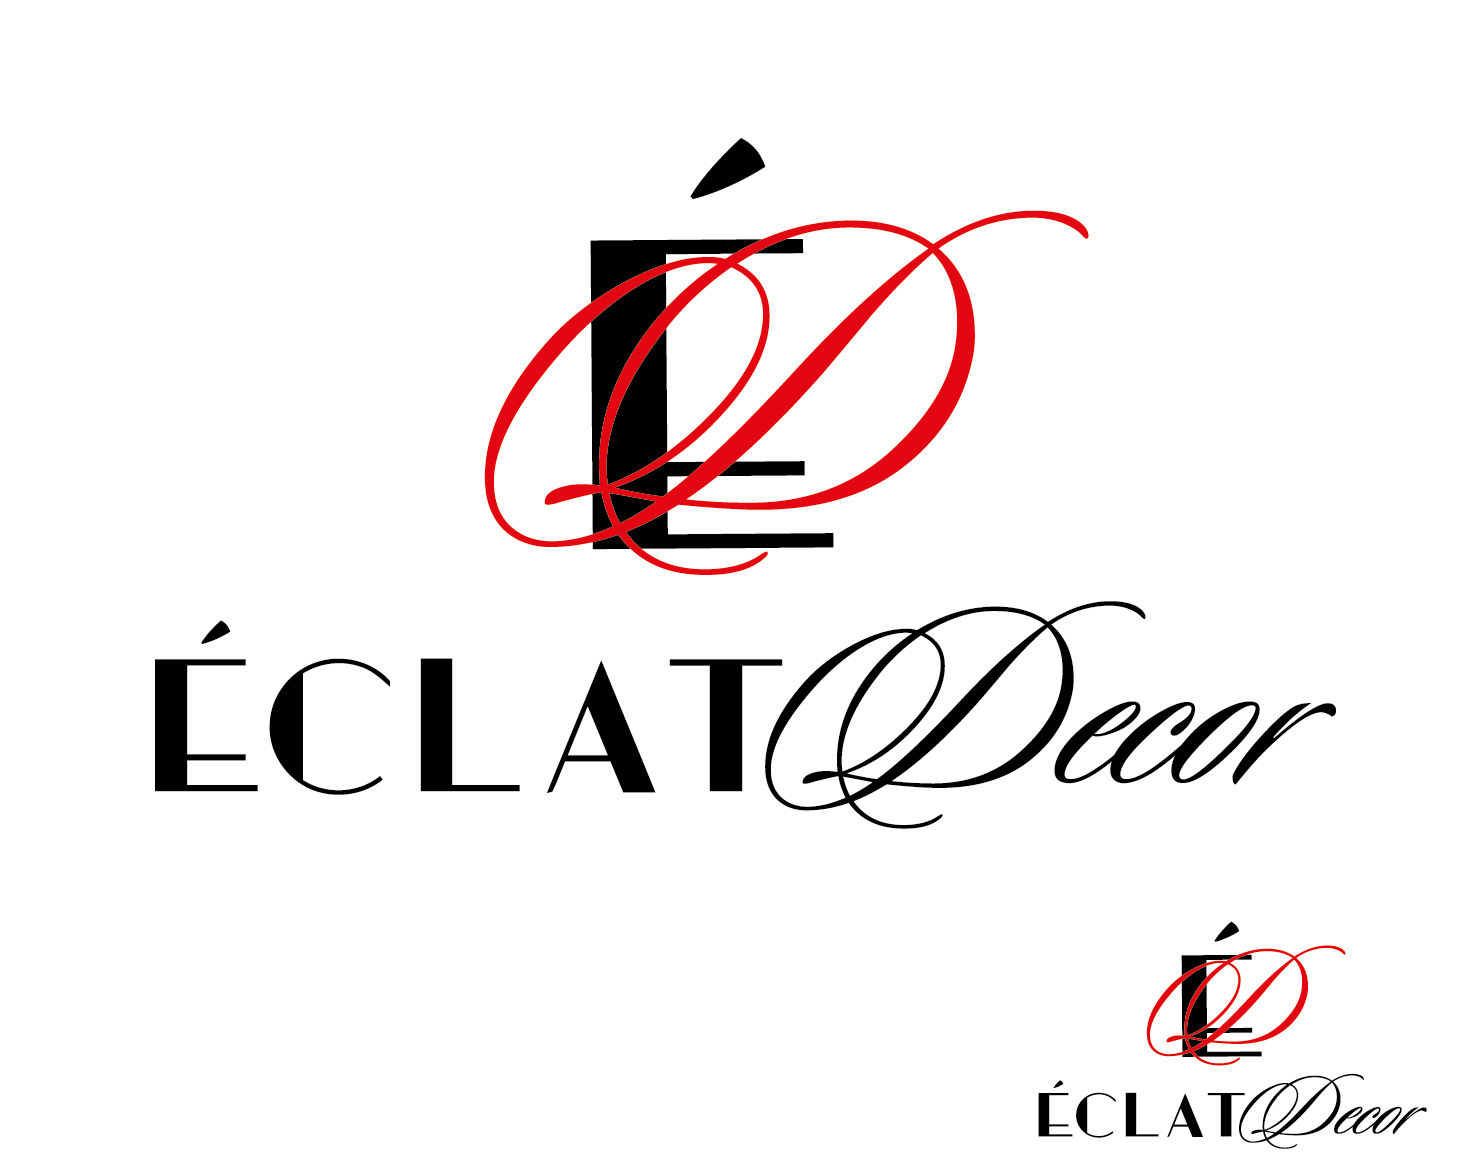 Logo Design by VENTSISLAV KOVACHEV - Entry No. 29 in the Logo Design Contest Imaginative Logo Design for Éclat Decor.